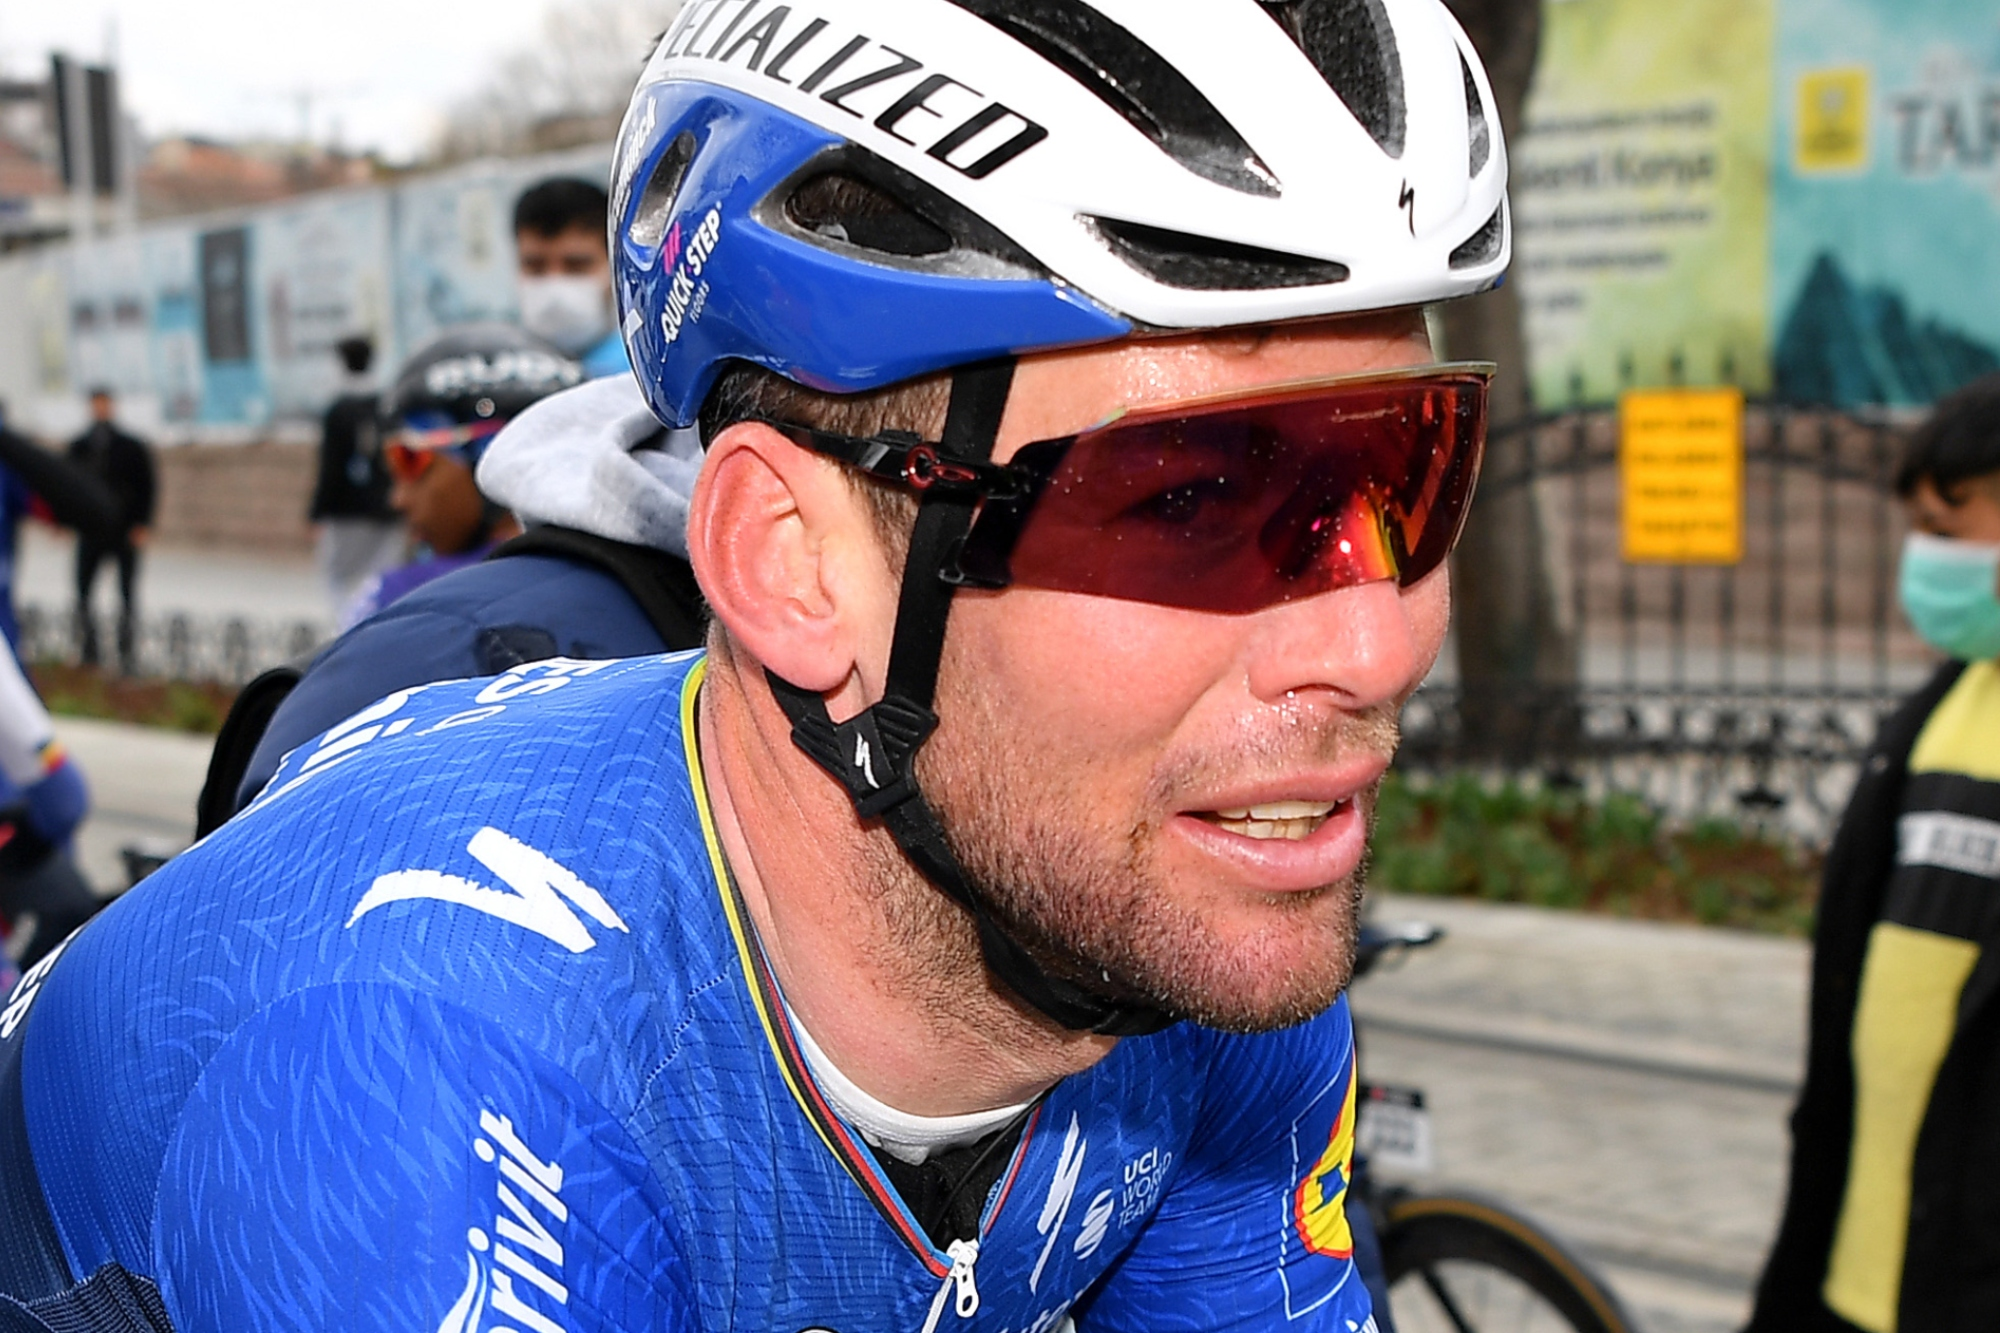 Canvendish sporting still unreleased Oakley glasses for Tour of Turkey win